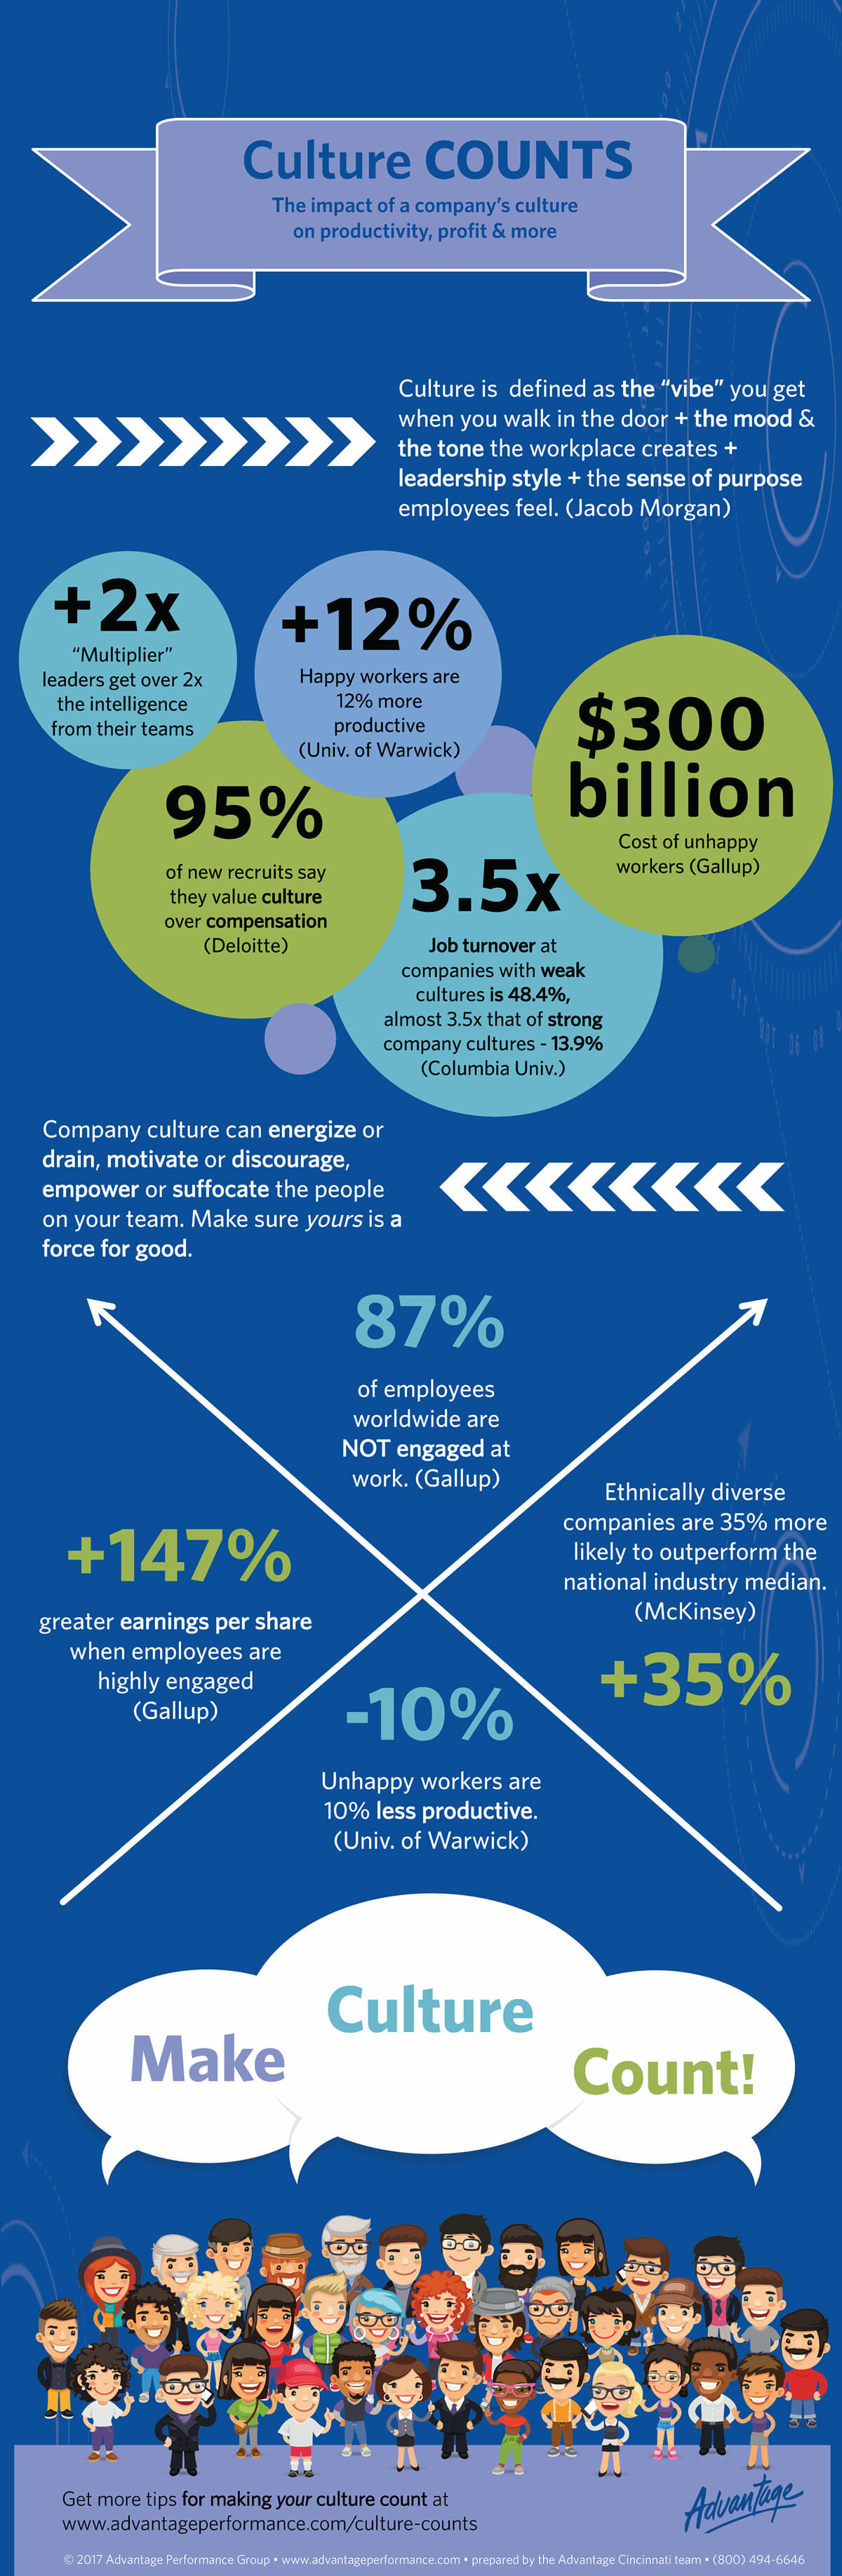 Infographic - A company's culture can increase productivity, employee engagement, earnings, and more. Here are 10 tips and some statistics to inspire you to make sureyour company culture COUNTS.